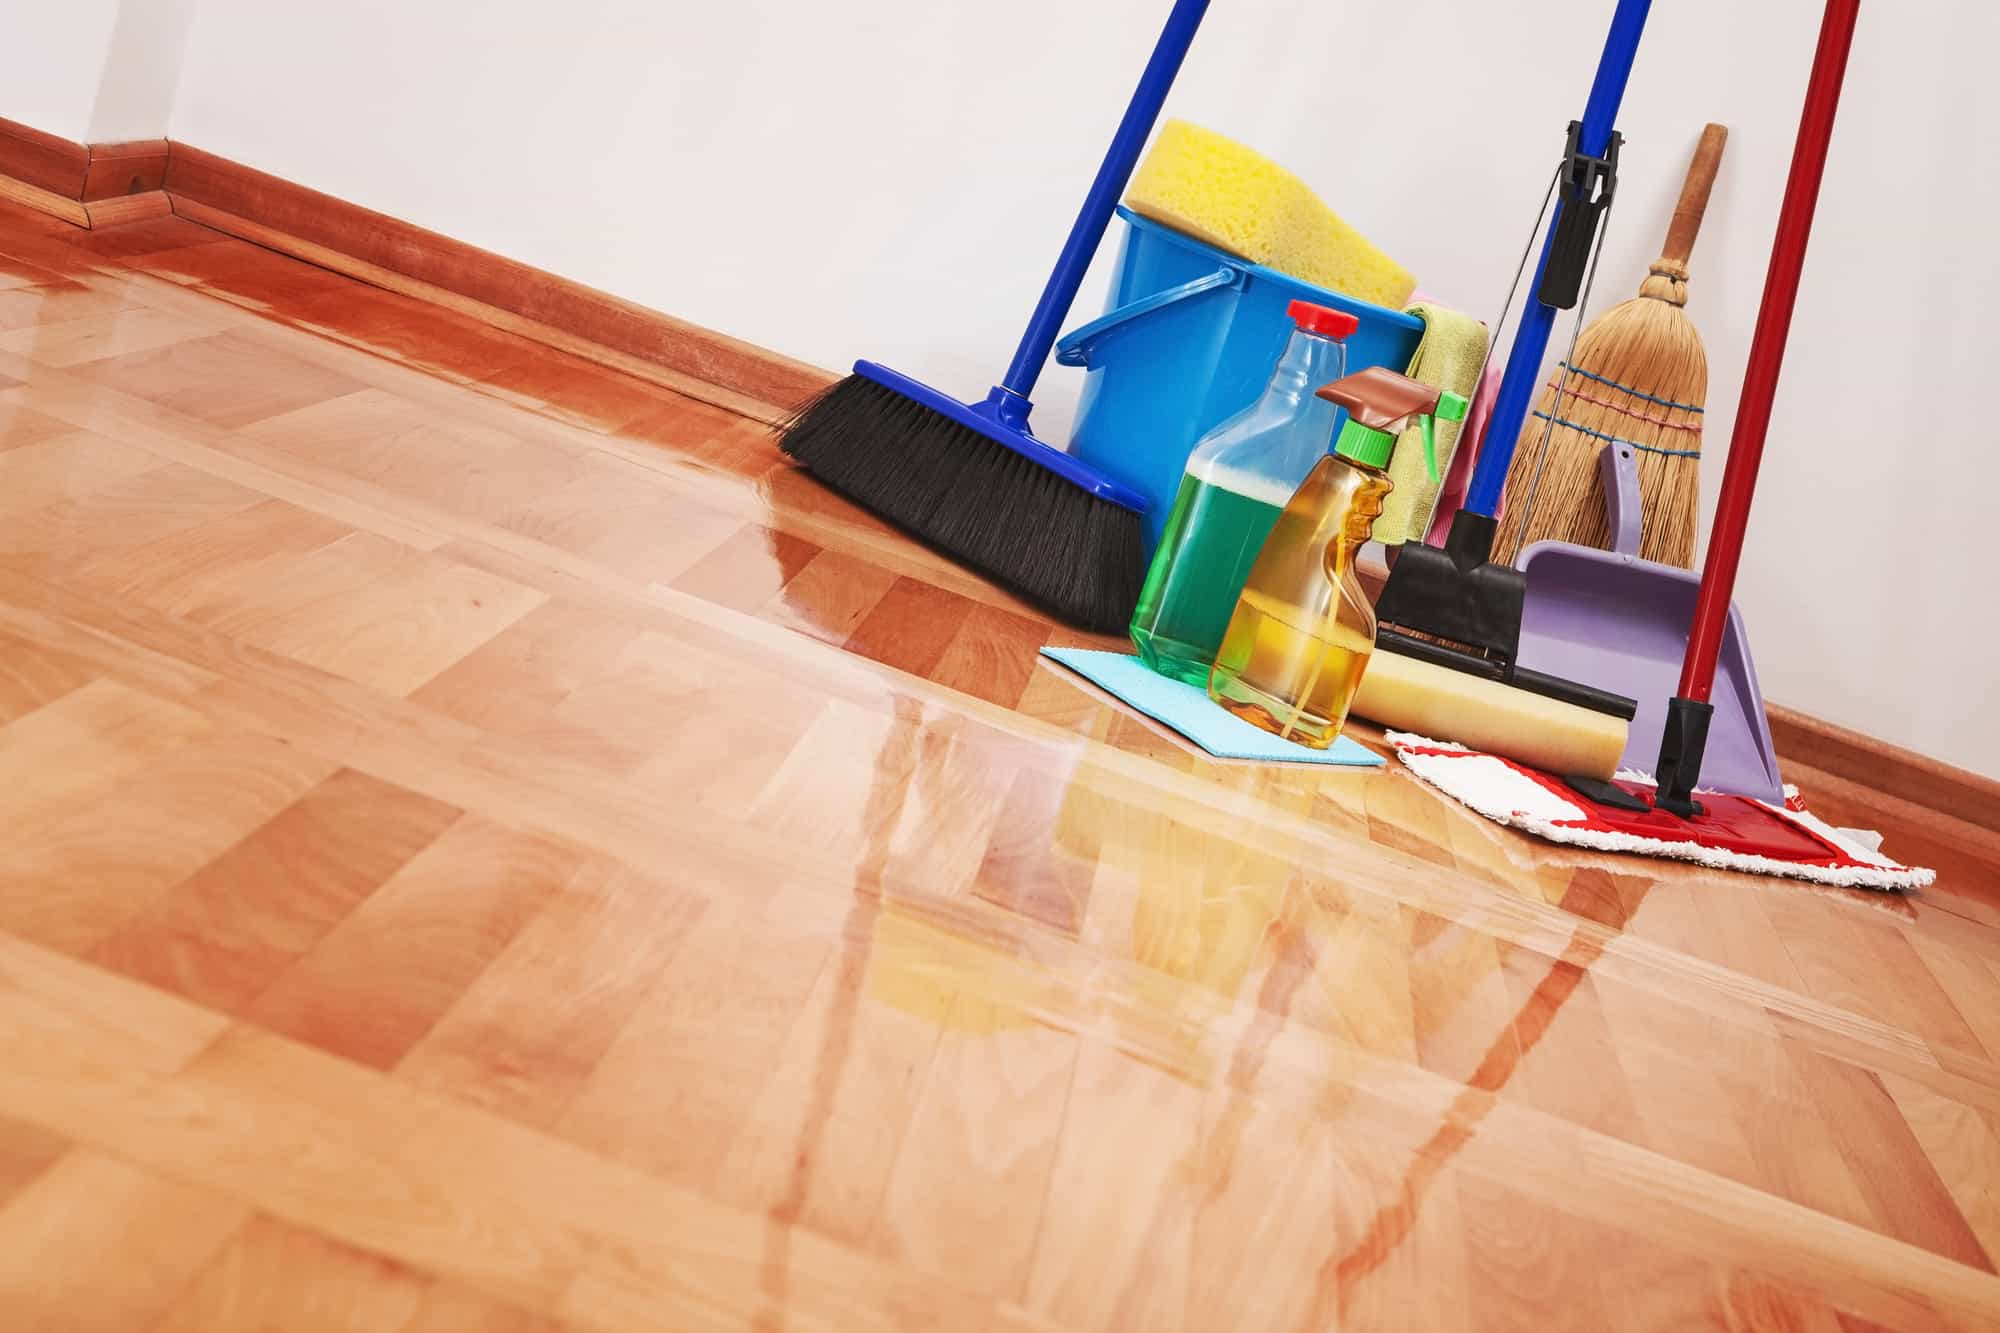 non-toxic cleaning products on the floor